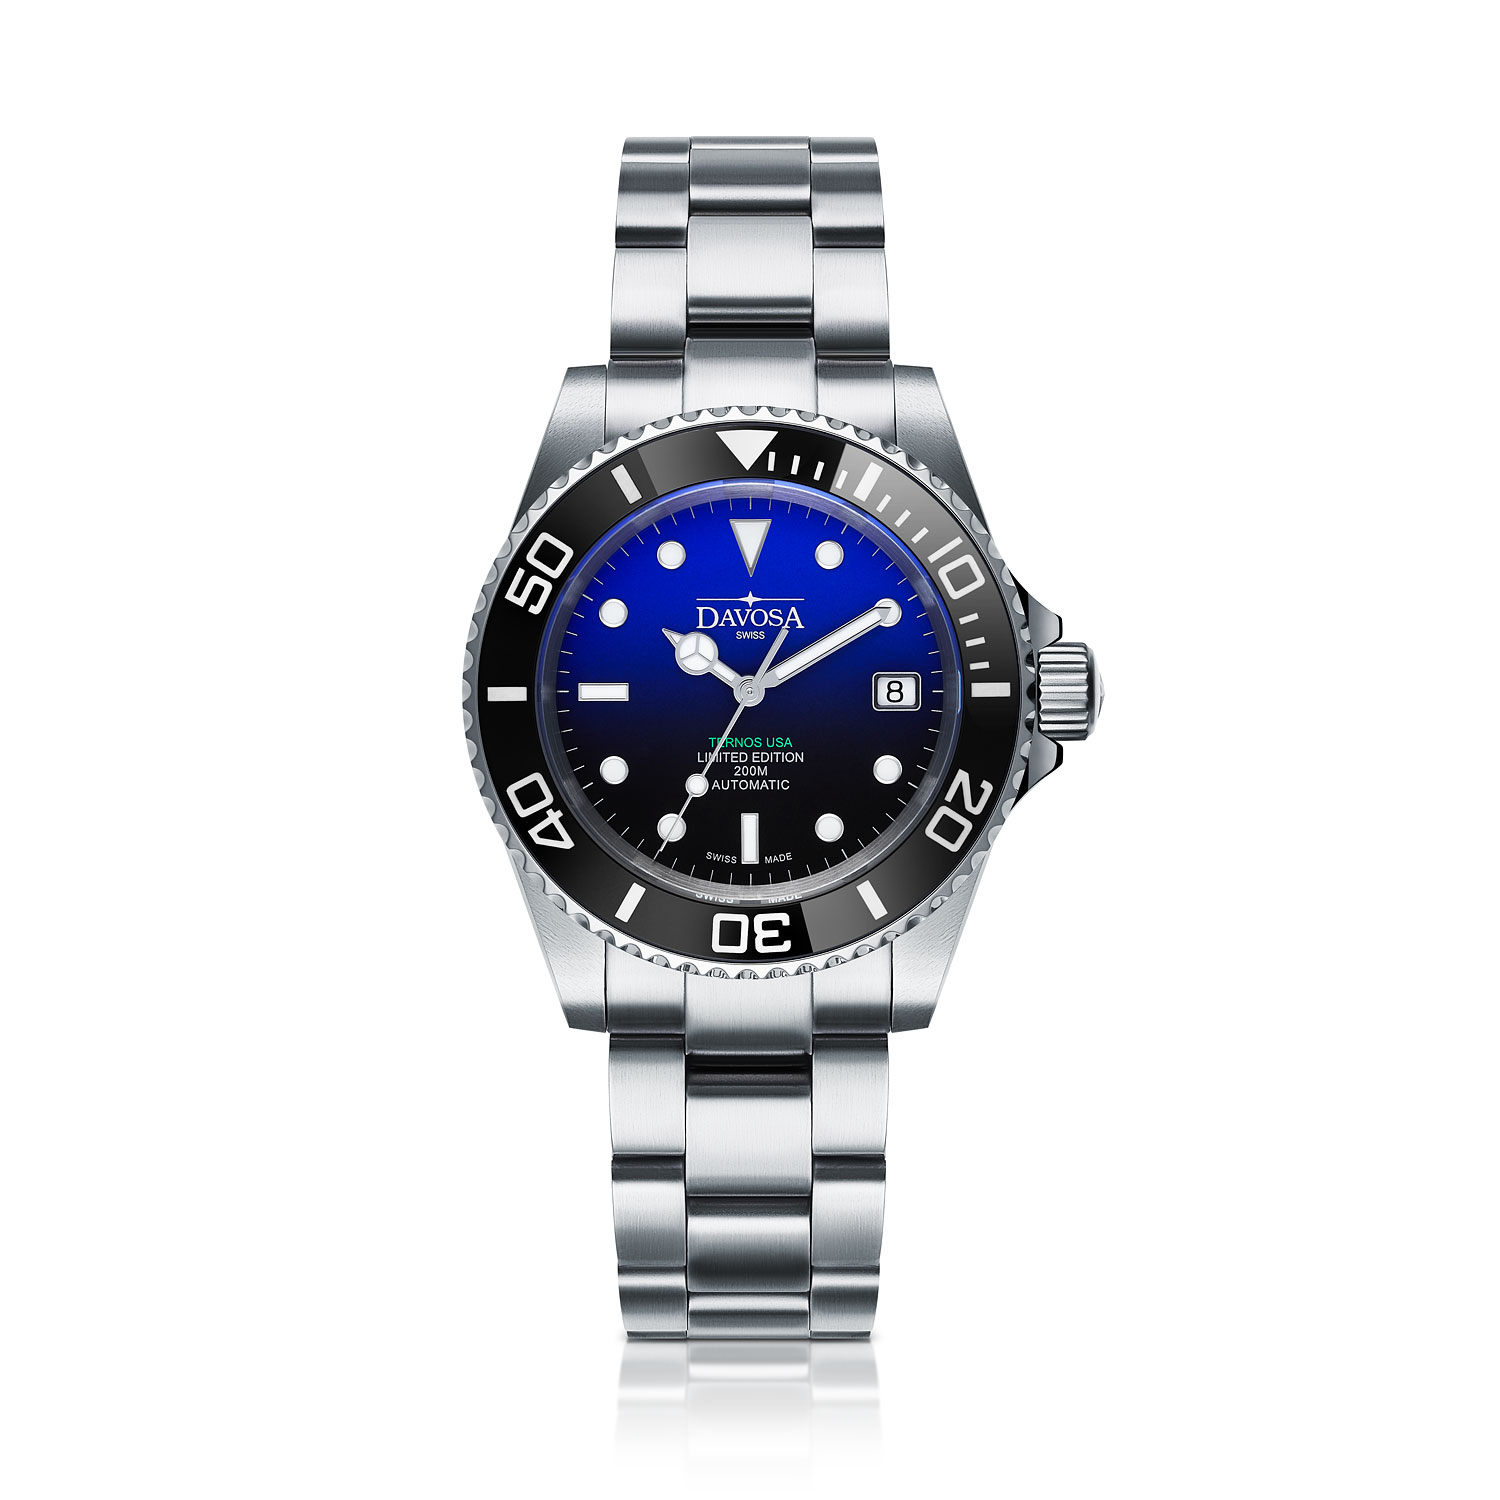 B-Ware Davosa Ternos Ceramic 161.555.99 / 16155599 Automatic TriaLink Limited Edition USA